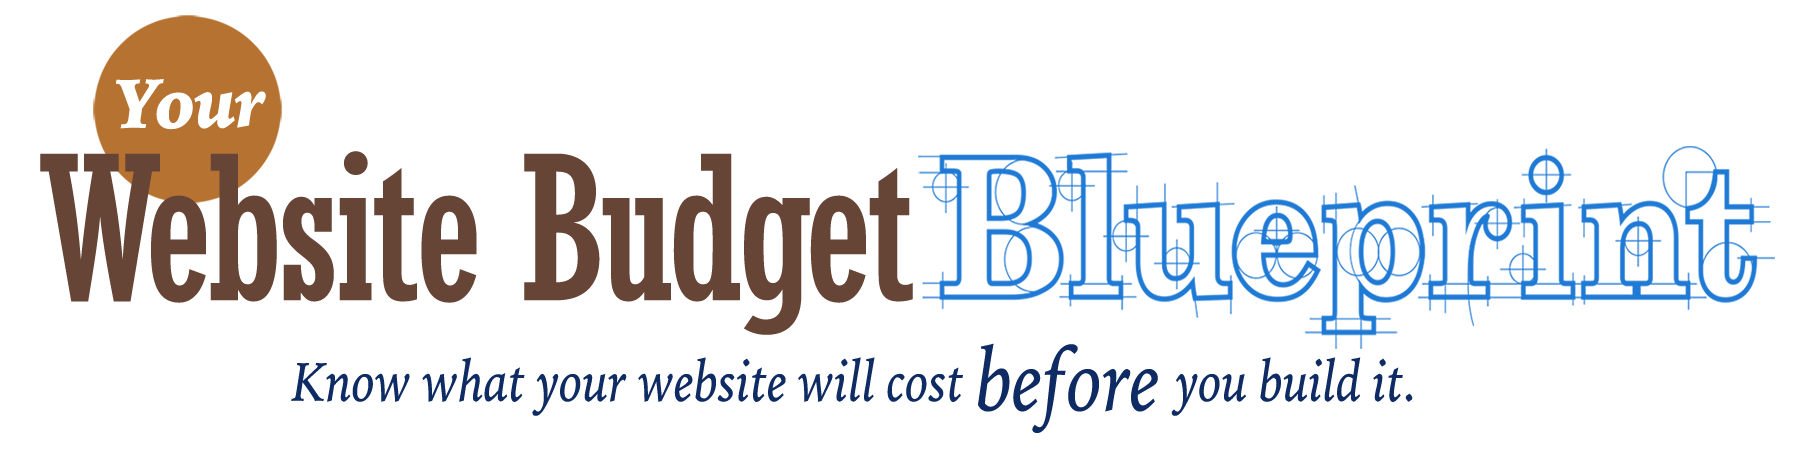 Your website budget blueprint online course laura christianson of blogging bistro presents malvernweather Image collections